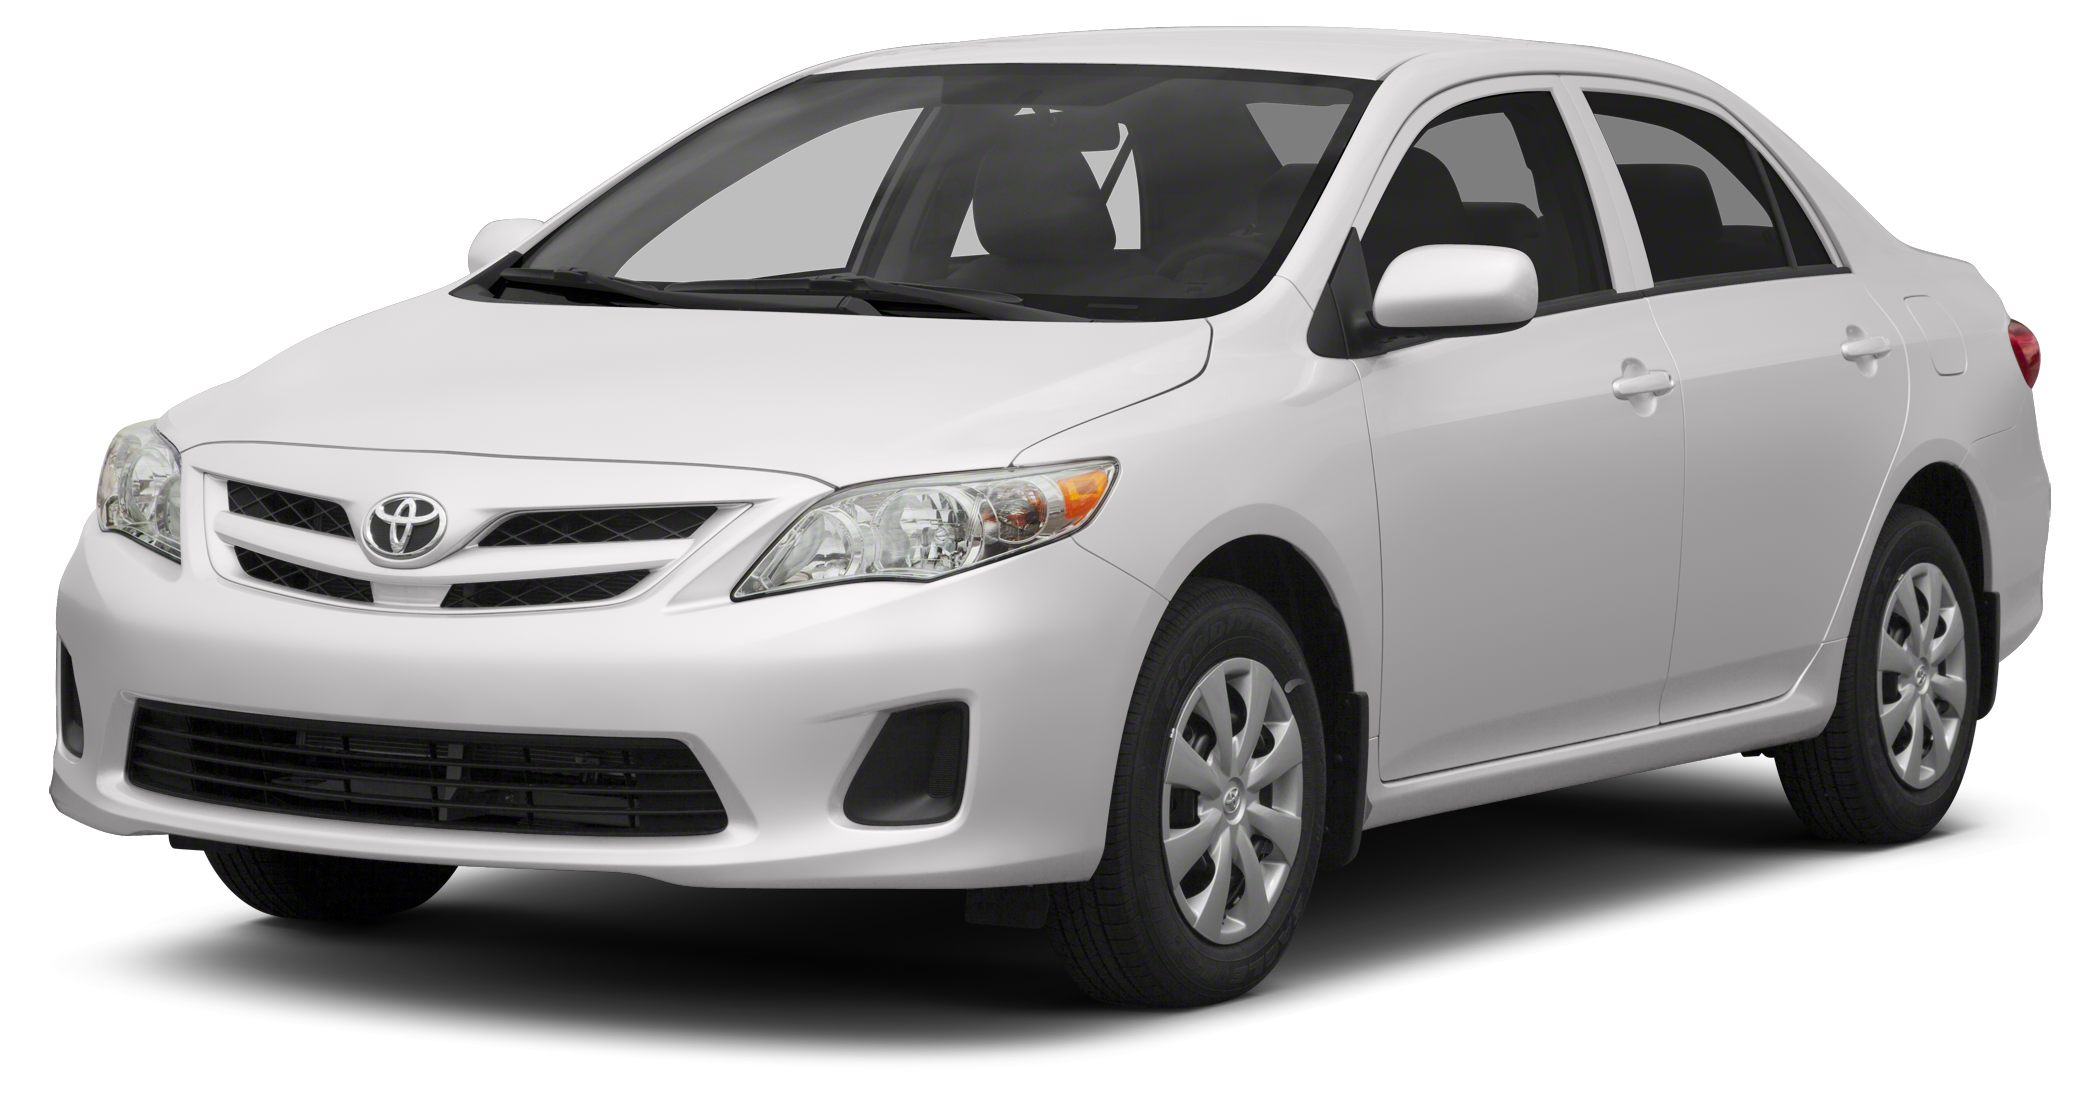 2012 Toyota Corolla LE Westboro Toyota Right People Right Price Right Now - You asked and we li